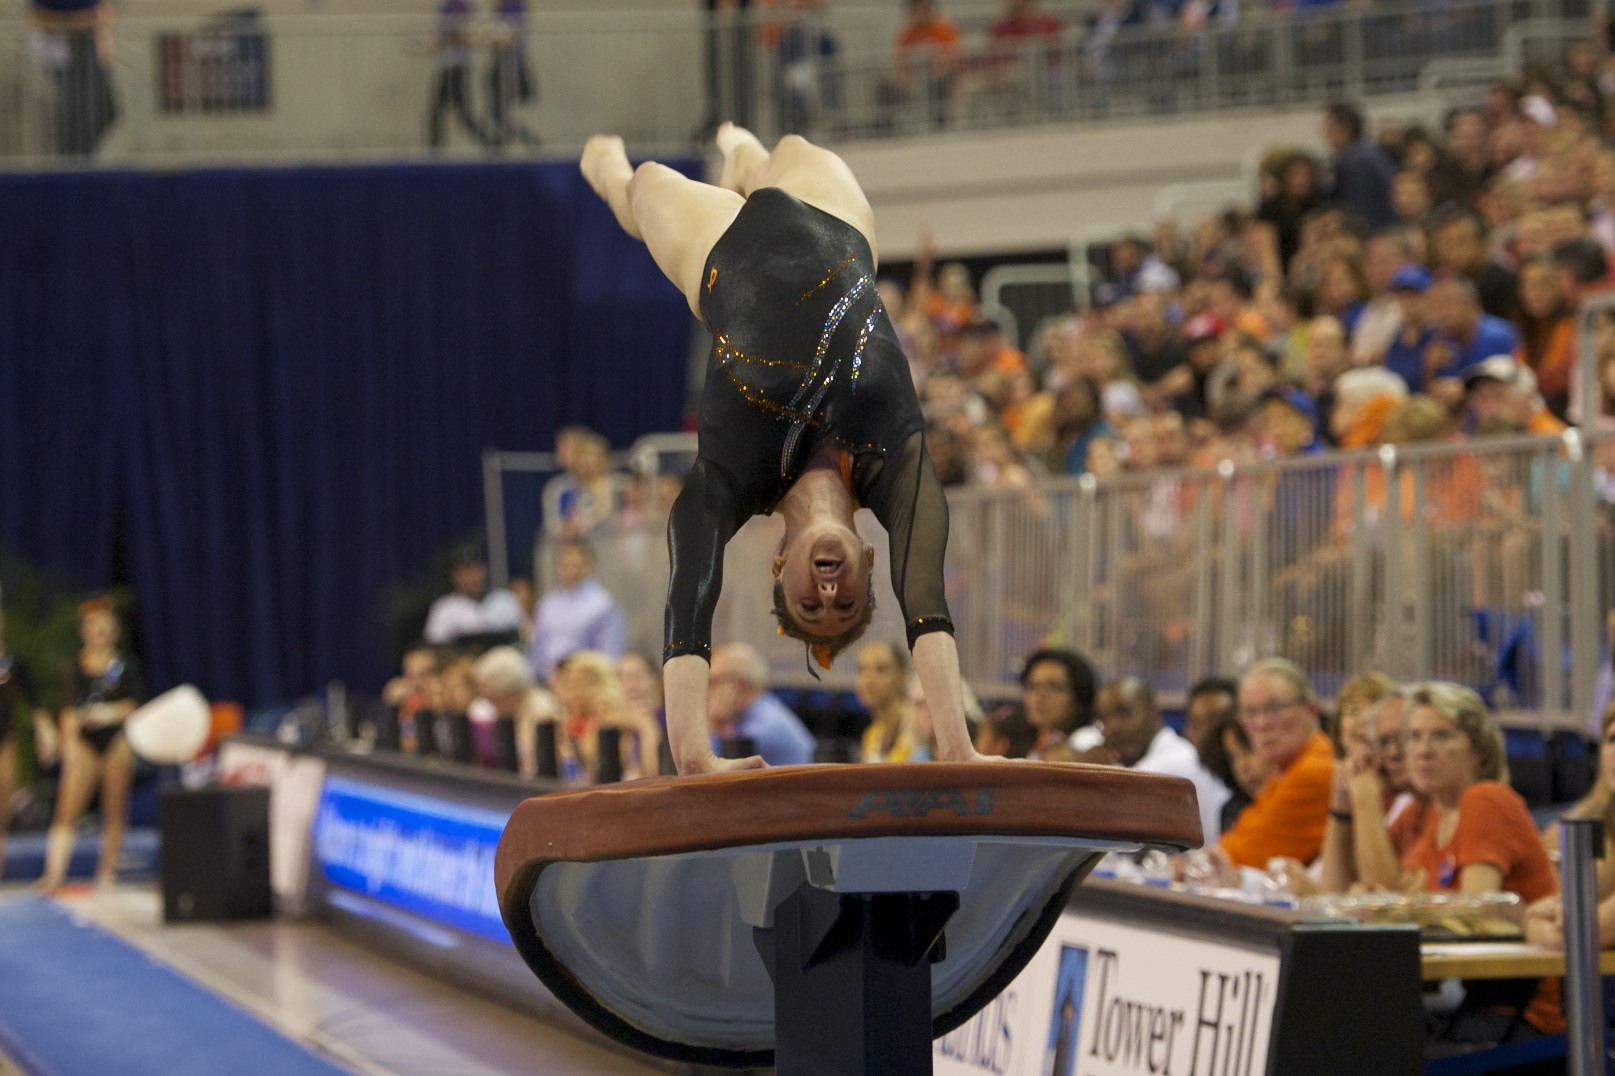 Junior Lauren Rose was exhibition on vault for the Florida Gators Friday night.